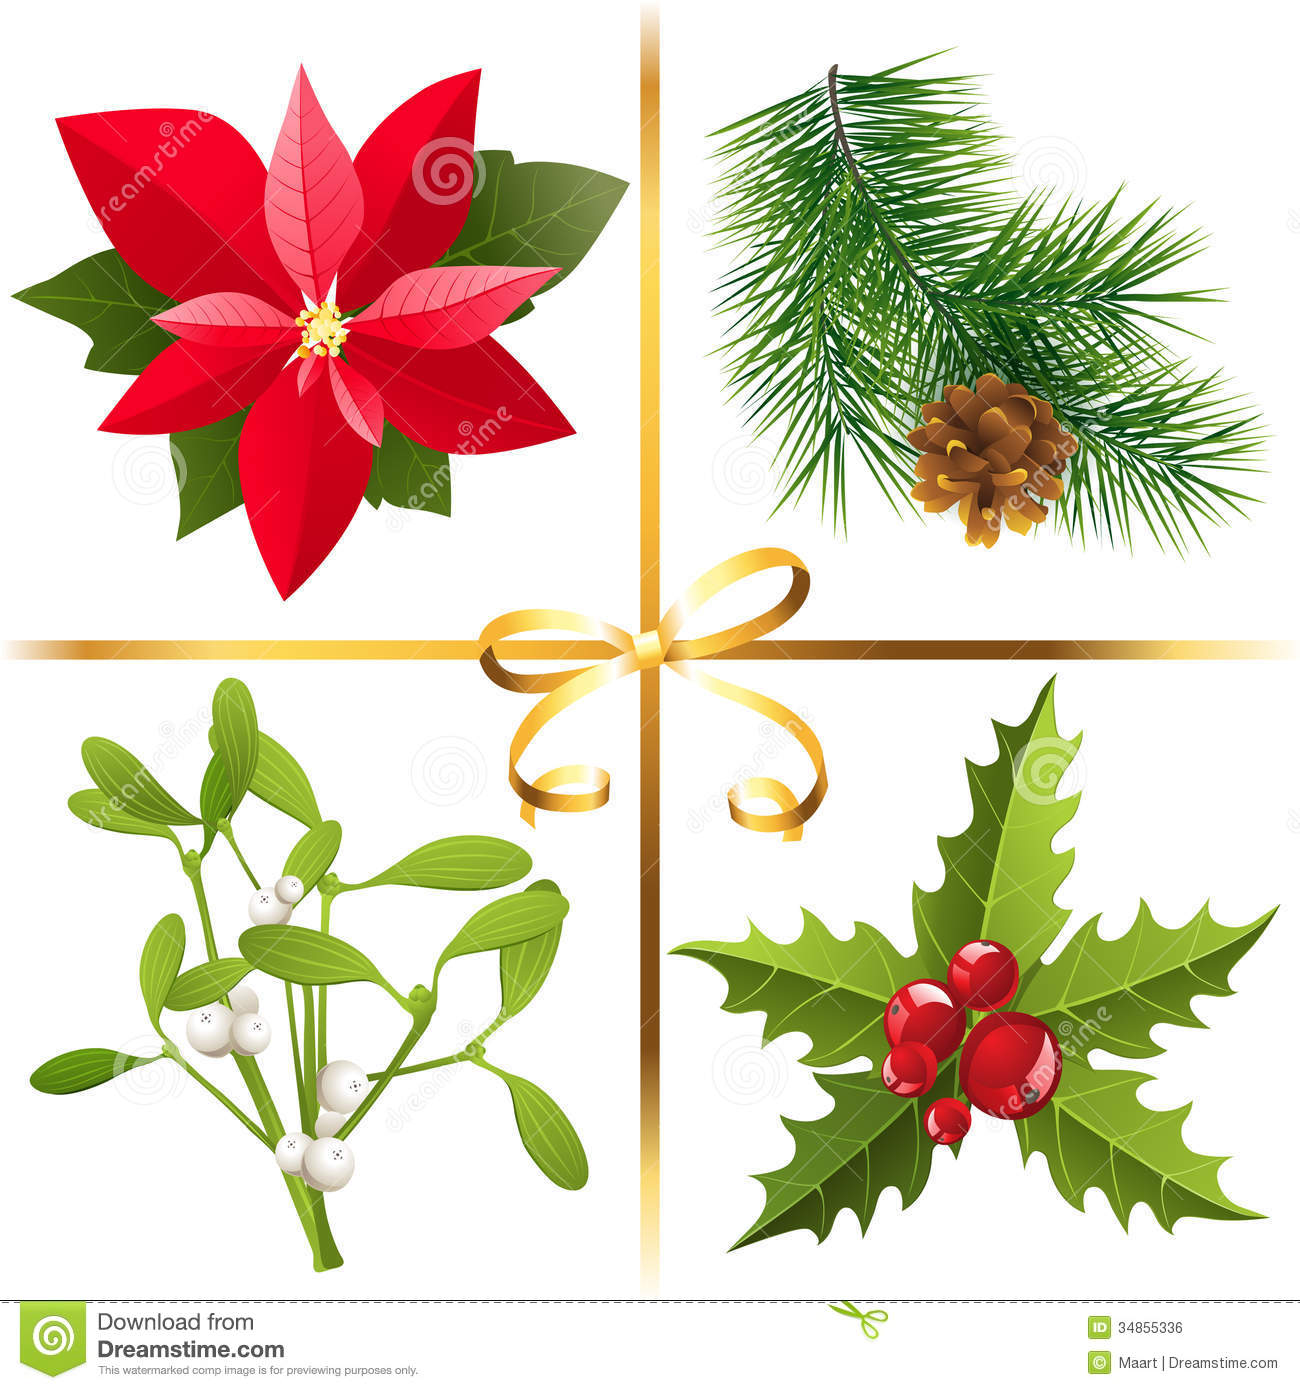 Christmas Plants Royalty Free Stock Image Image 34855336